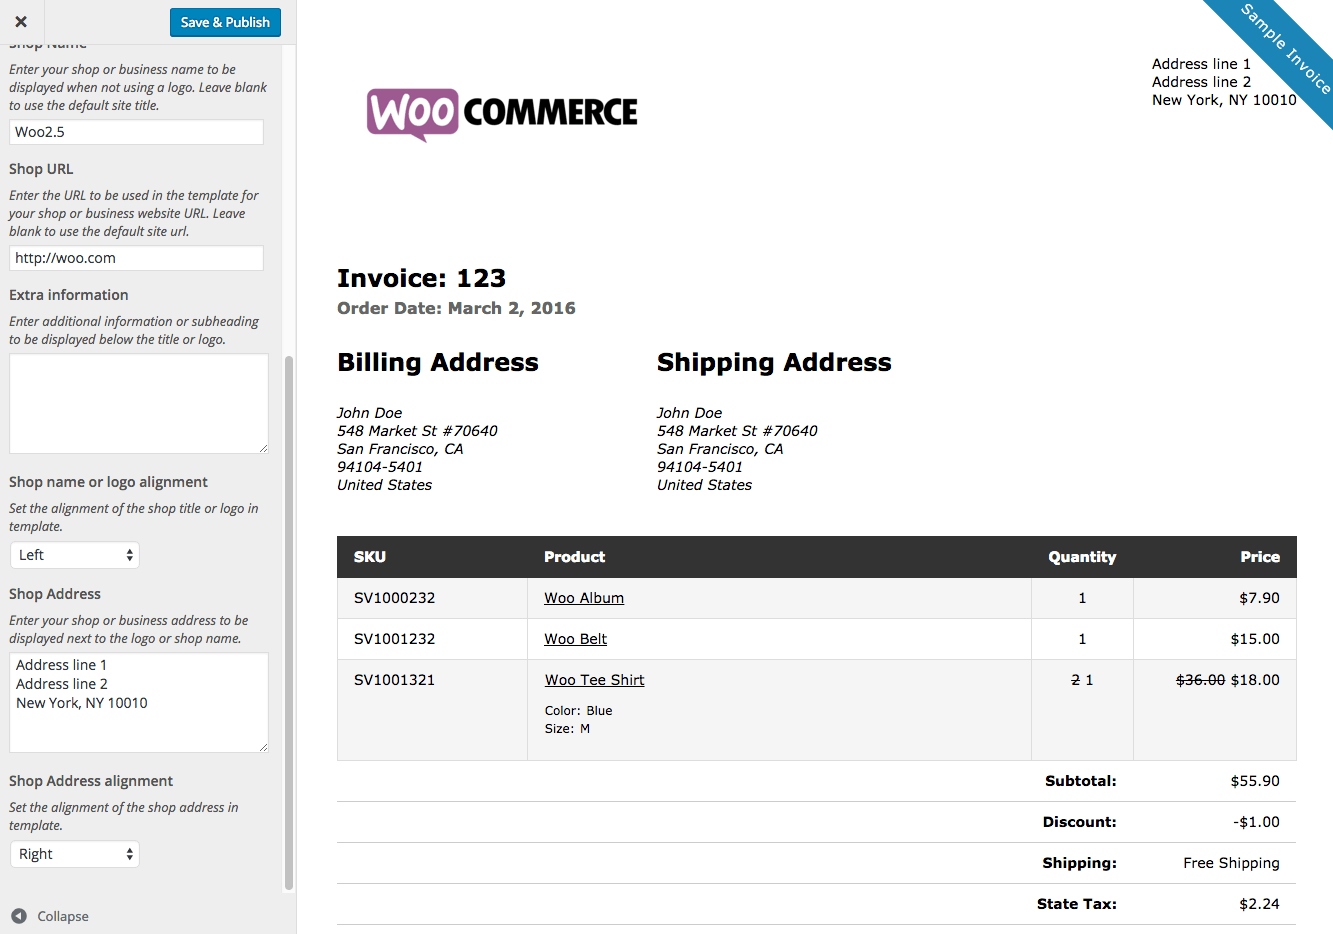 Musclebuildingtipsus  Sweet Print Invoices Amp Packing Lists  Woocommerce With Entrancing Woocommerce Print Invoices  Packing Lists Customizer With Easy On The Eye Car Invoices Online Also Invoice Software For Pc In Addition Lps Desktop Invoice Management And Vat Invoice Format In Excel As Well As Over Invoicing And Under Invoicing Additionally Commercial Invoice Dhl From Woocommercecom With Musclebuildingtipsus  Entrancing Print Invoices Amp Packing Lists  Woocommerce With Easy On The Eye Woocommerce Print Invoices  Packing Lists Customizer And Sweet Car Invoices Online Also Invoice Software For Pc In Addition Lps Desktop Invoice Management From Woocommercecom